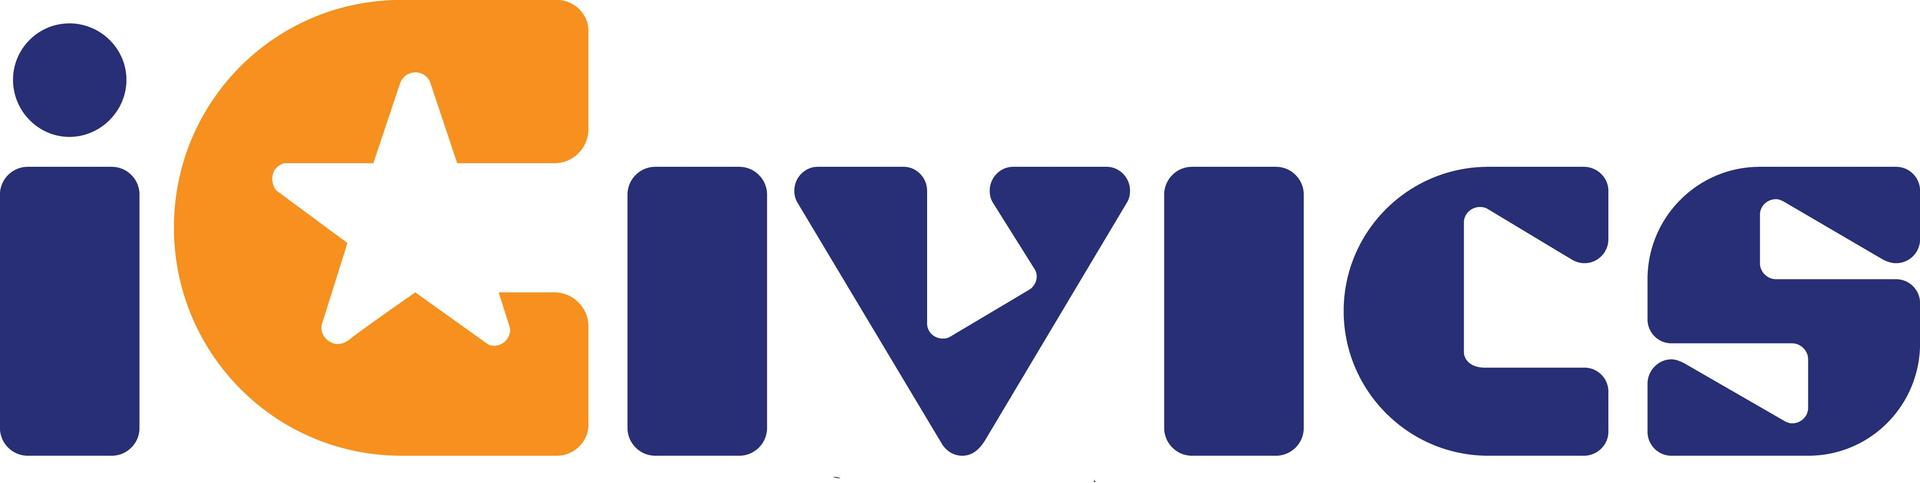 """iCivics text logo with a lower-case """"i"""""""